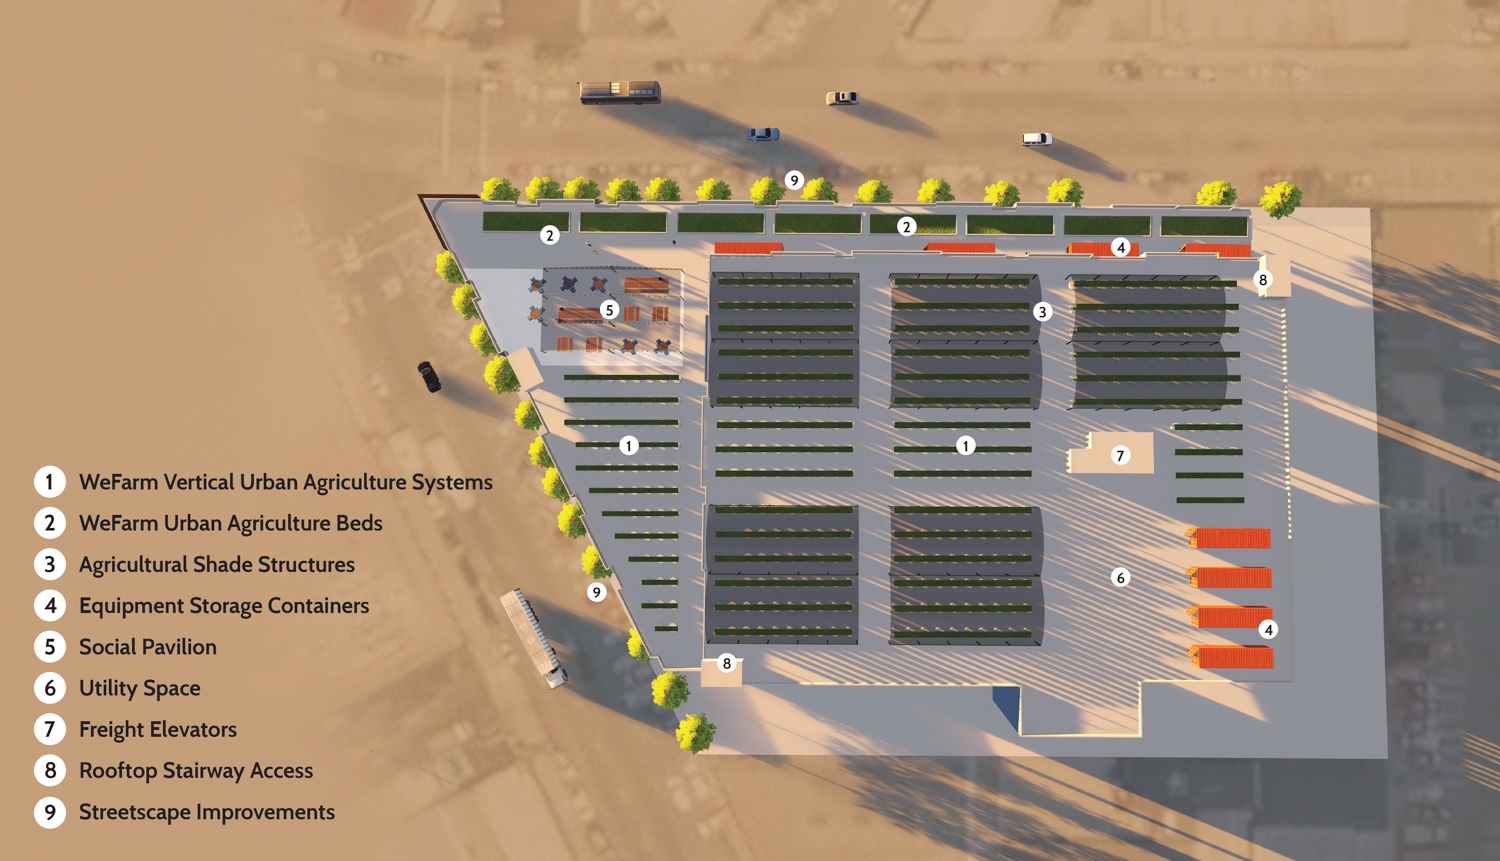 2285 Jerrold Avenue, rendering with floor plan of agricultural layout, image by Rana Creek